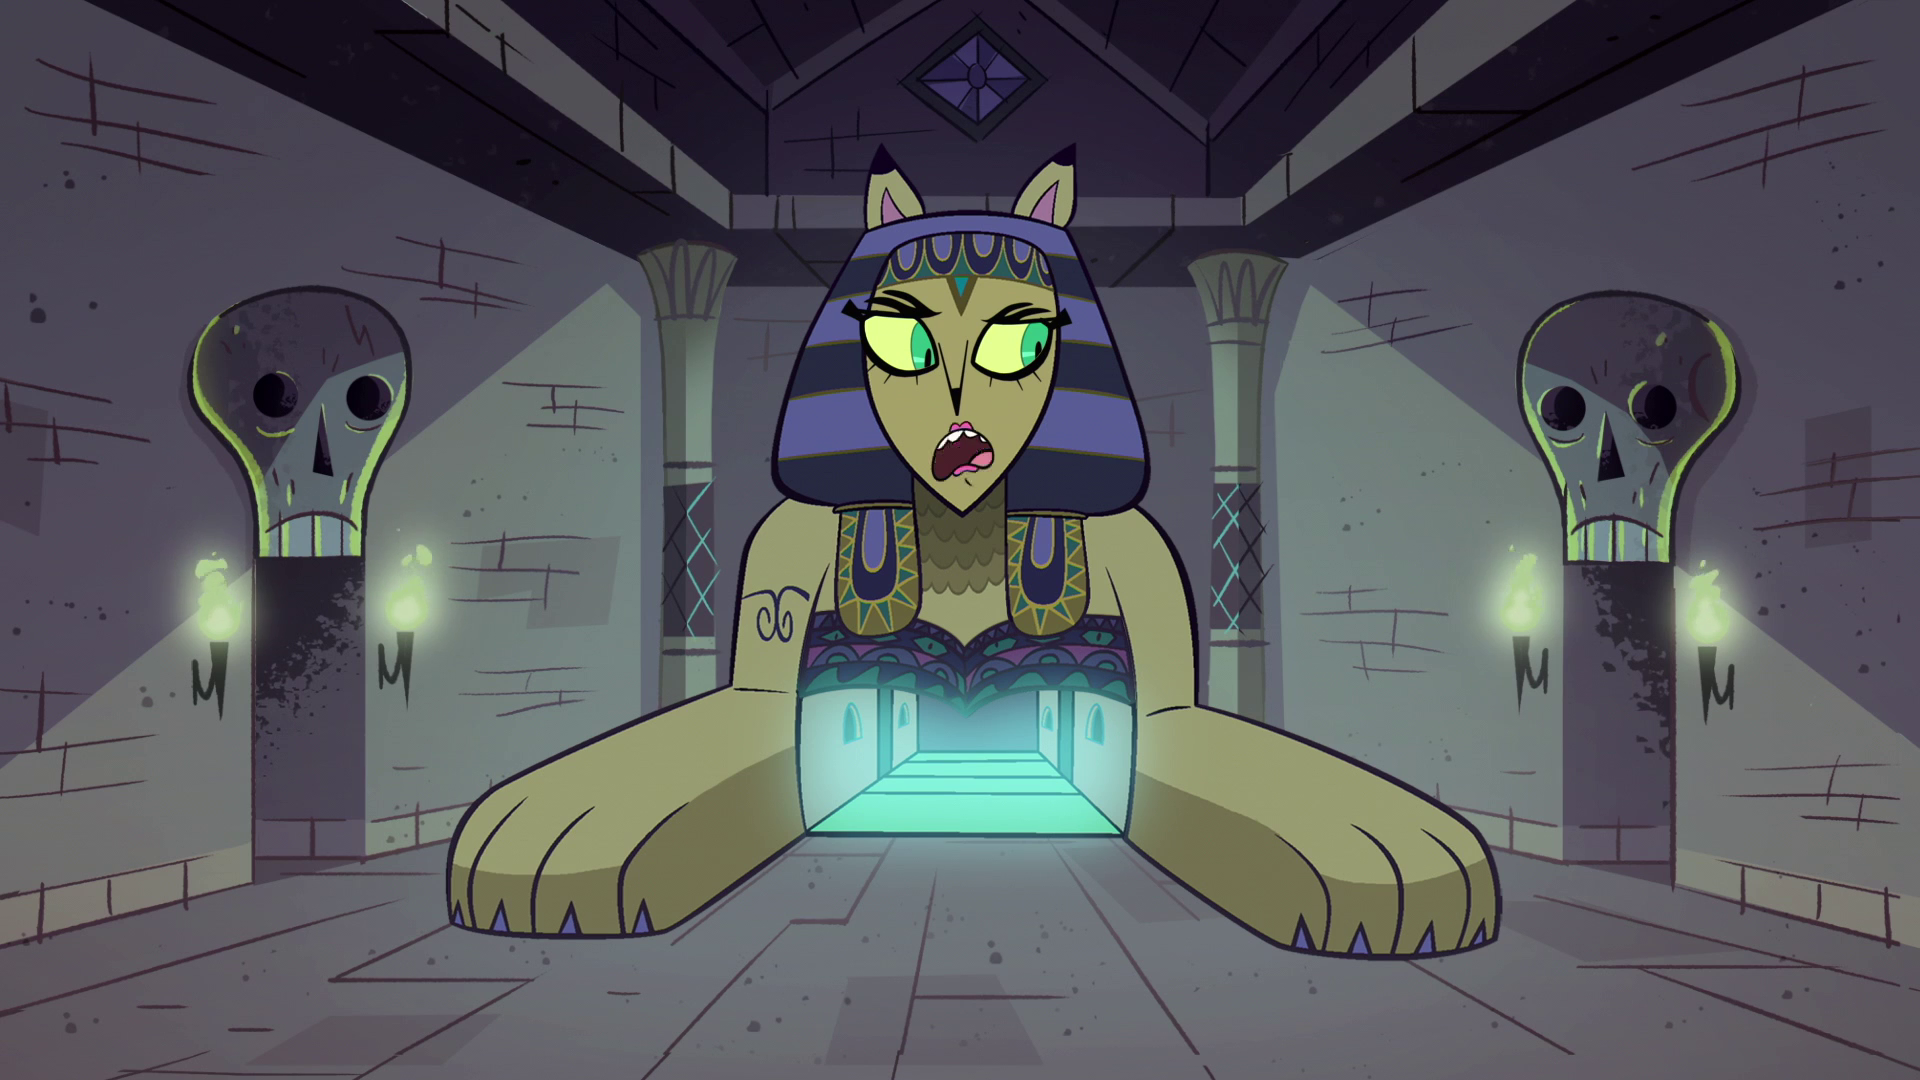 S1E8 Riddle Sphinx talking to skeleton door.png & Image - S1E8 Riddle Sphinx talking to skeleton door.png | Star vs ...